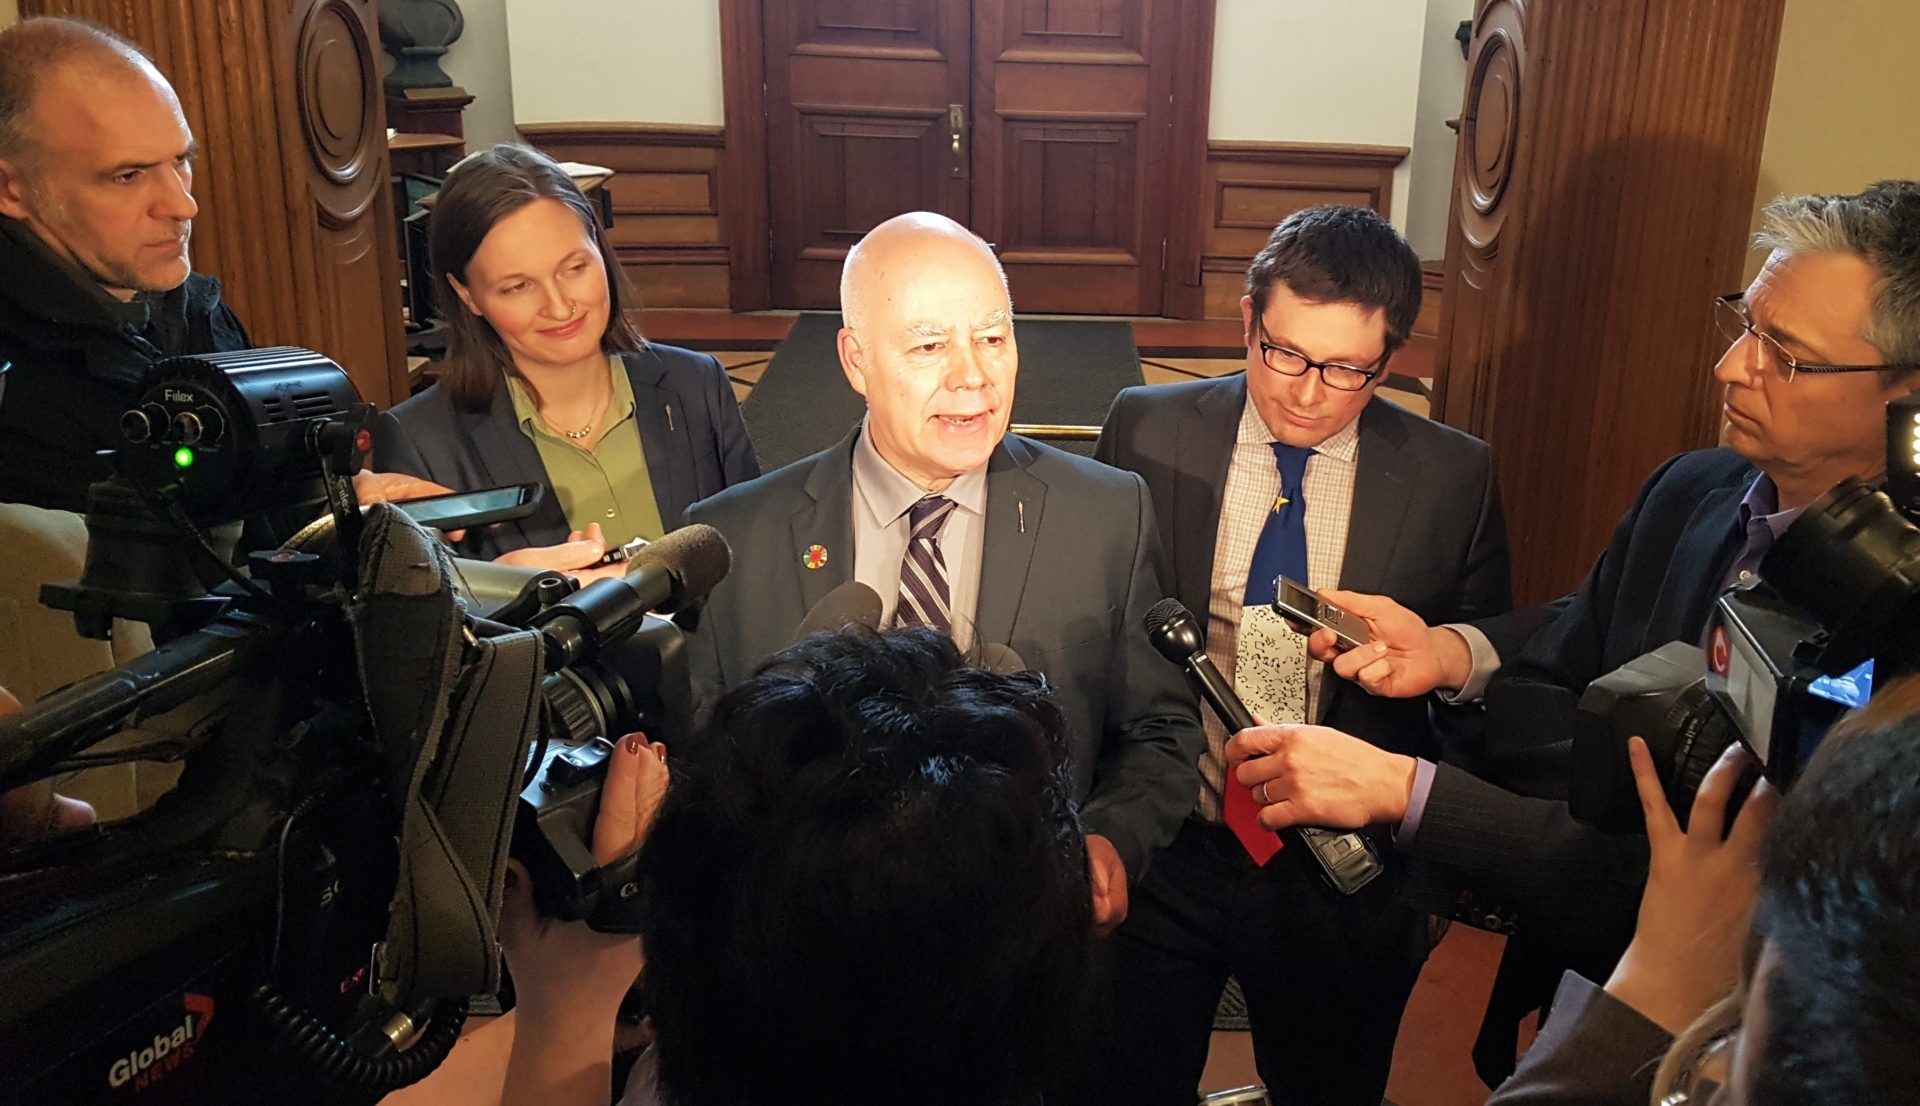 New Brunswickers voted for change, not the status quo – Green MLAs vote against the Higgs budget for lack of vision